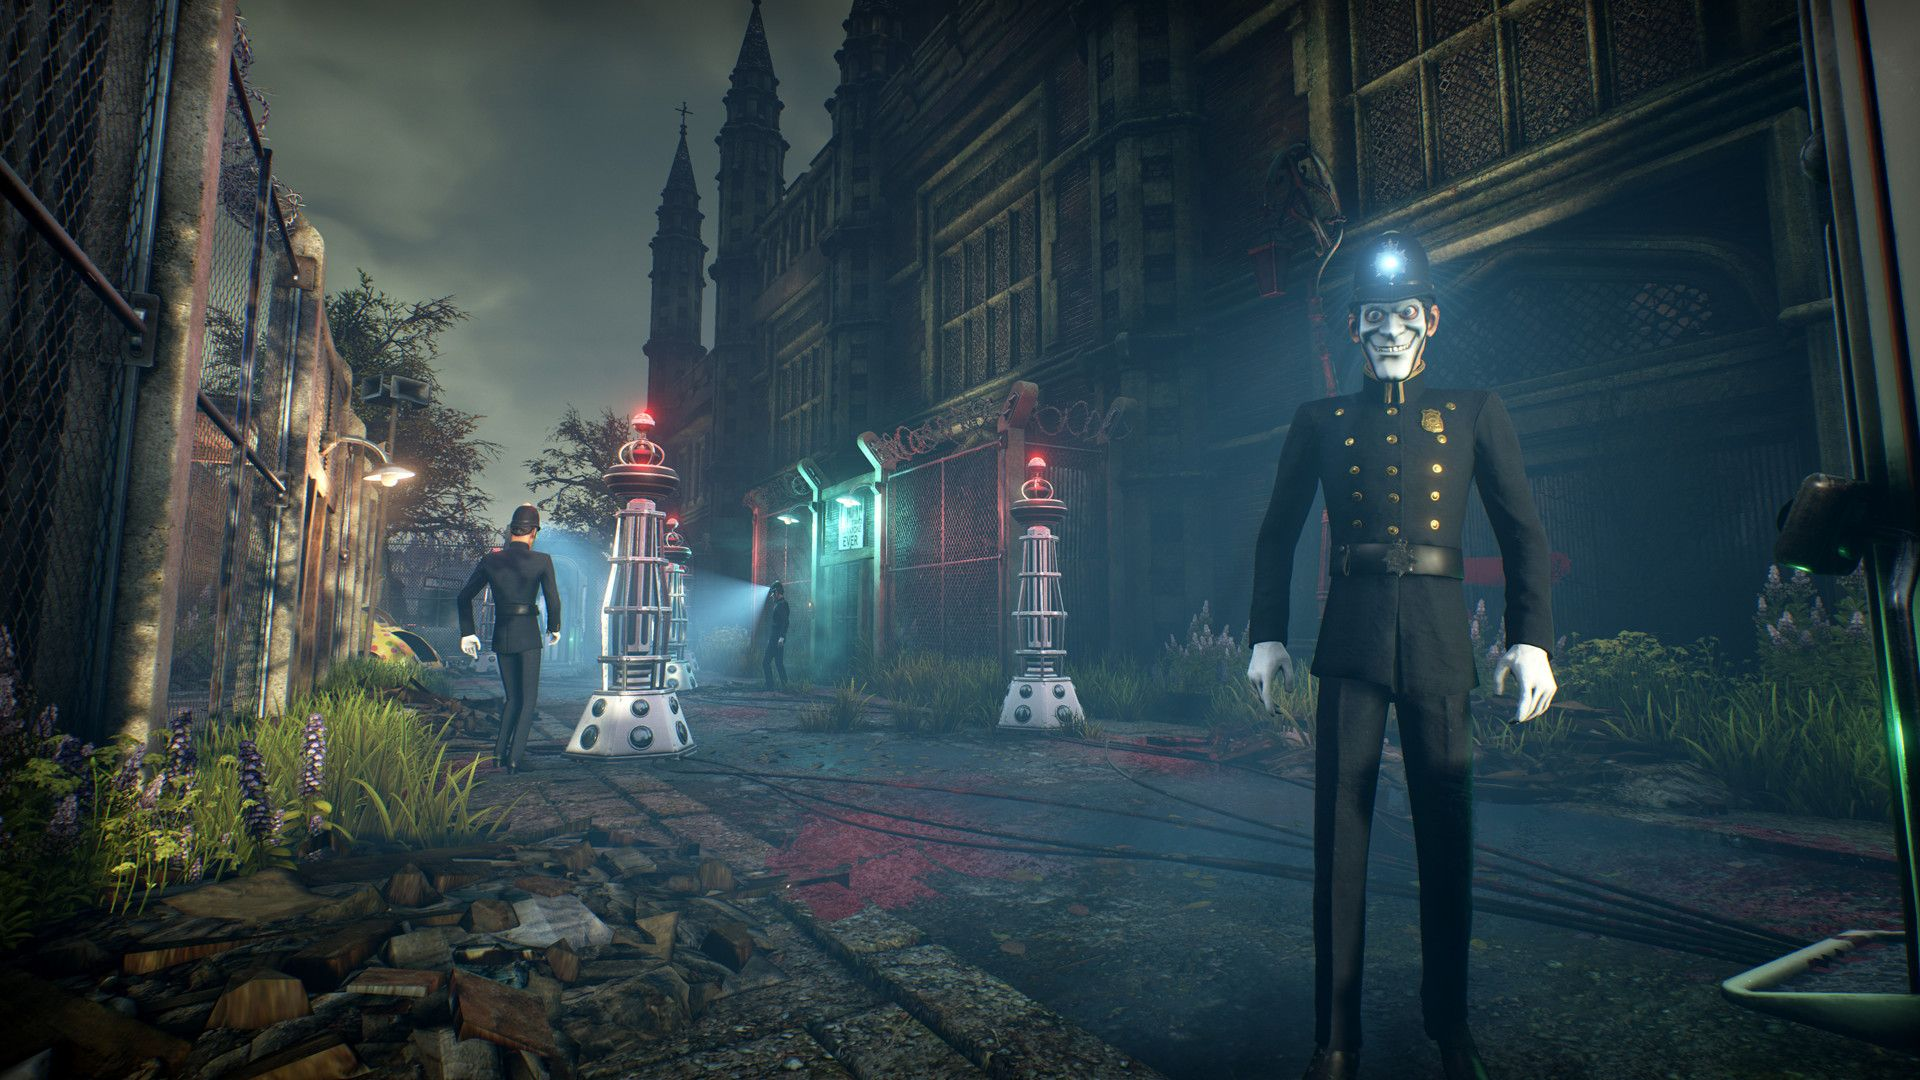 We Happy Few in 2020 (With images) Best indie games, We